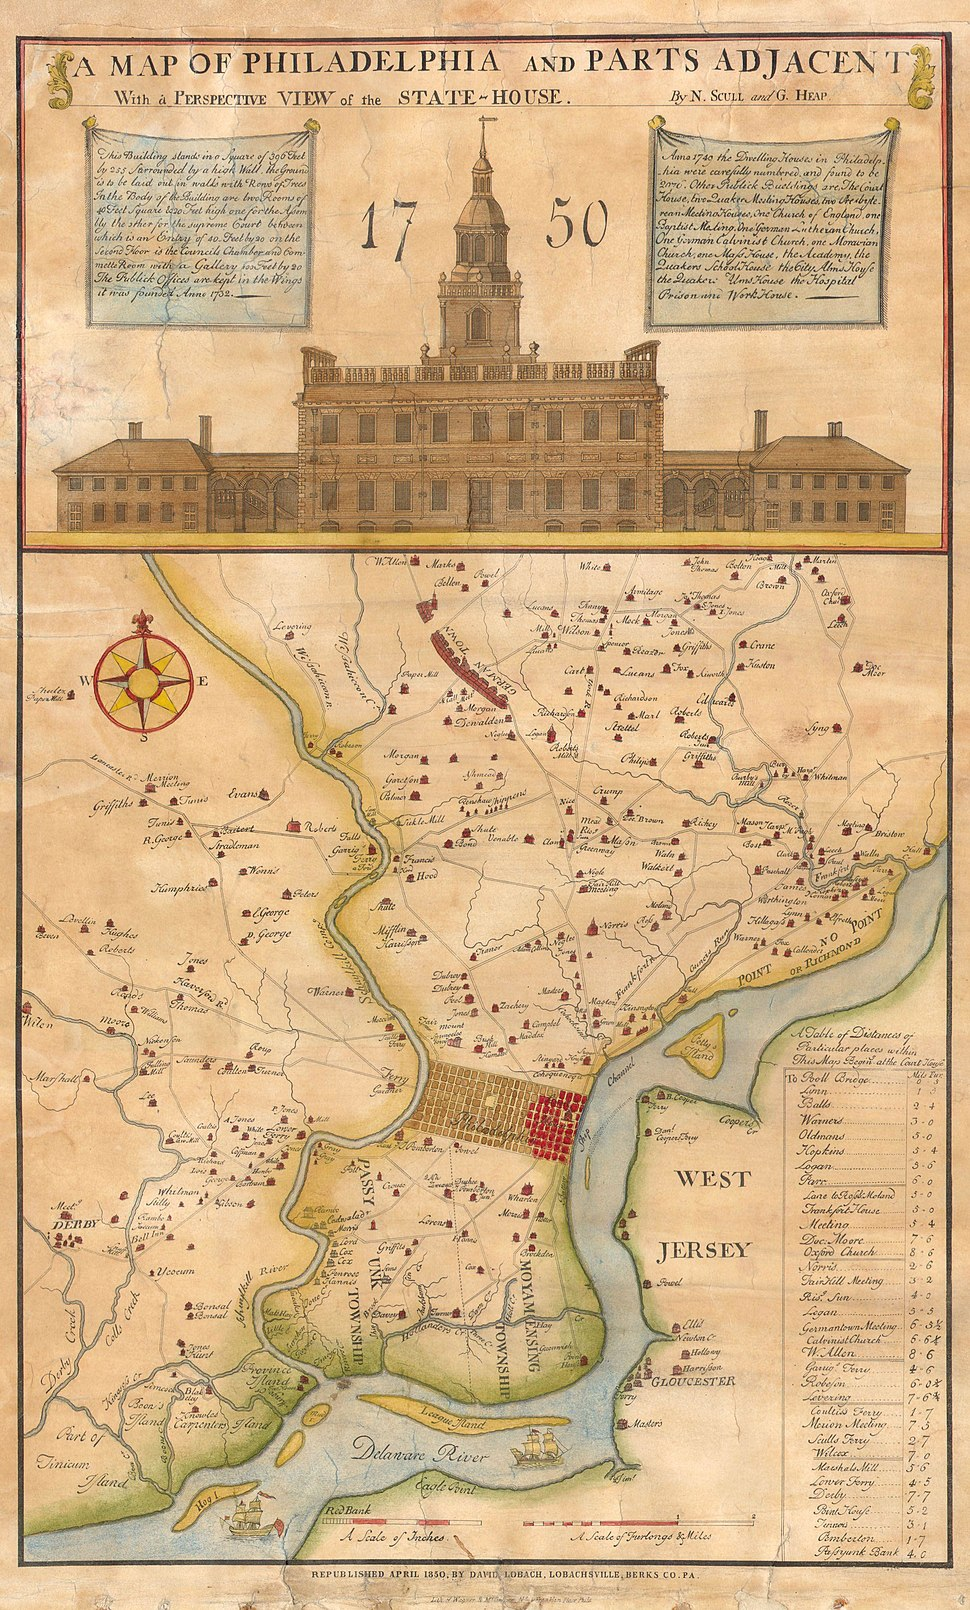 1752 ( 1850 ) Scull %5E Heap Map of Philadelphia %5E Environs (first view of Phillidelphia State House) - Geographicus - Philadelphia-sculllobach-1850